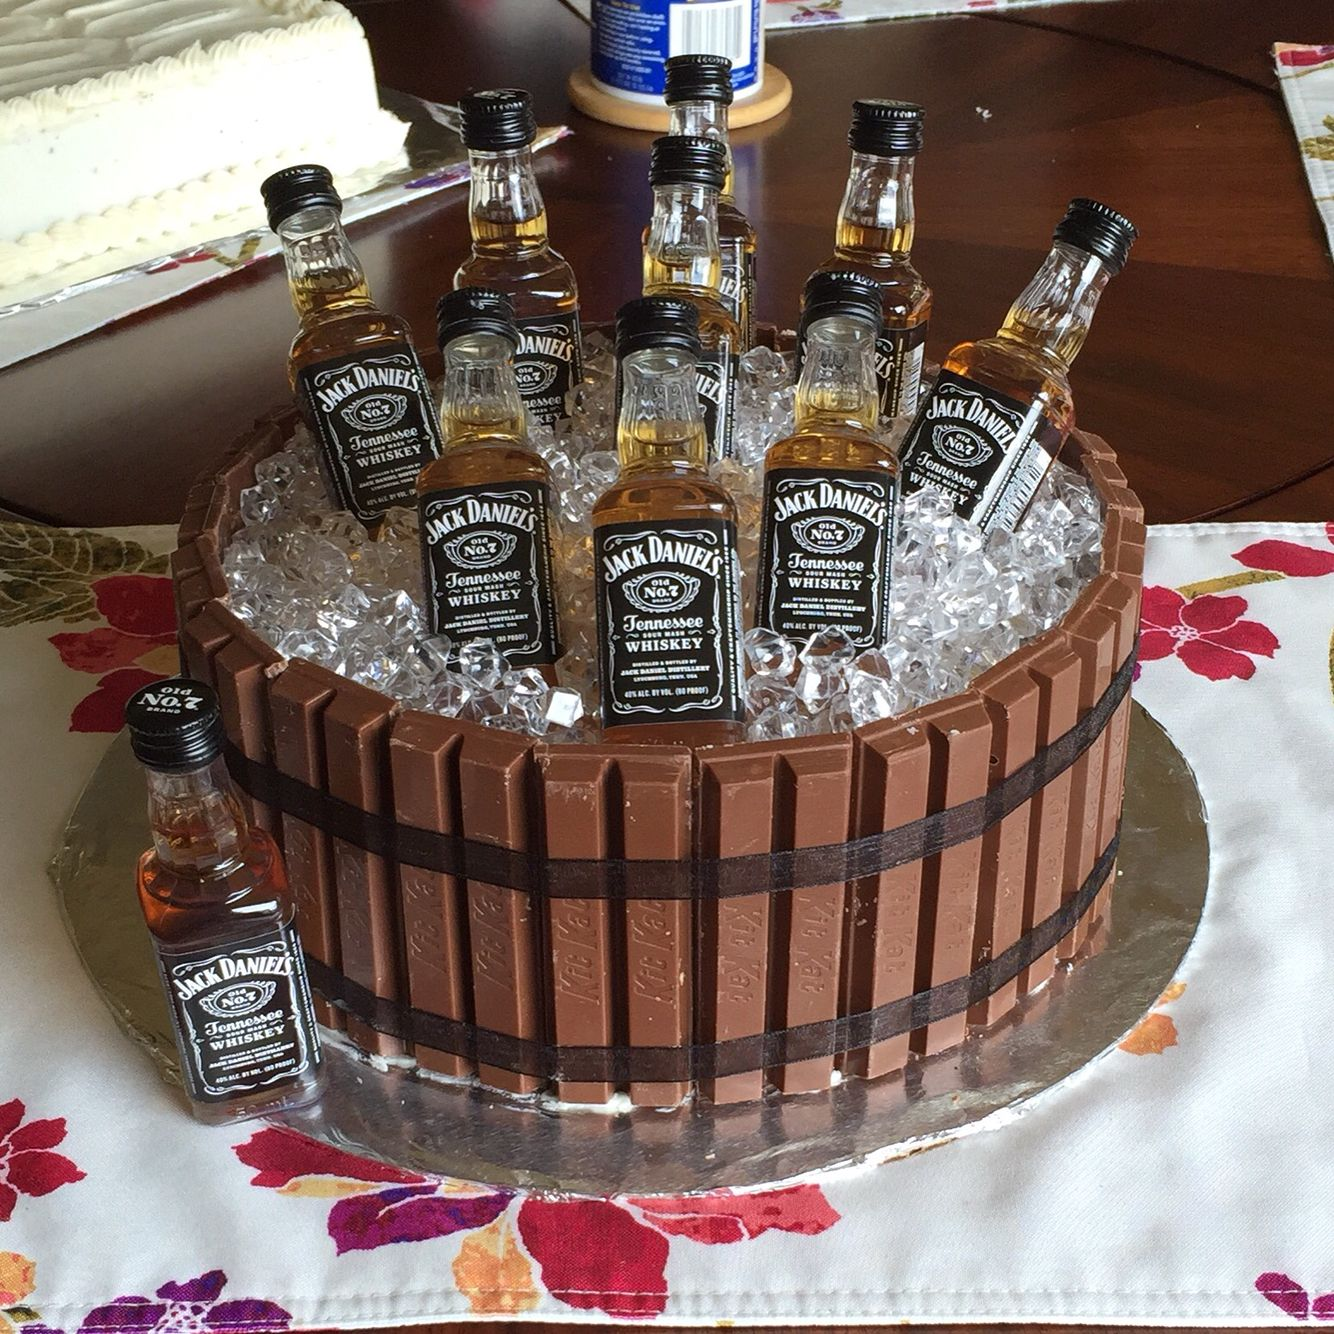 Miraculous Jack Daniels Kitkat Barrel Cake With Images Beer Cake Funny Birthday Cards Online Alyptdamsfinfo